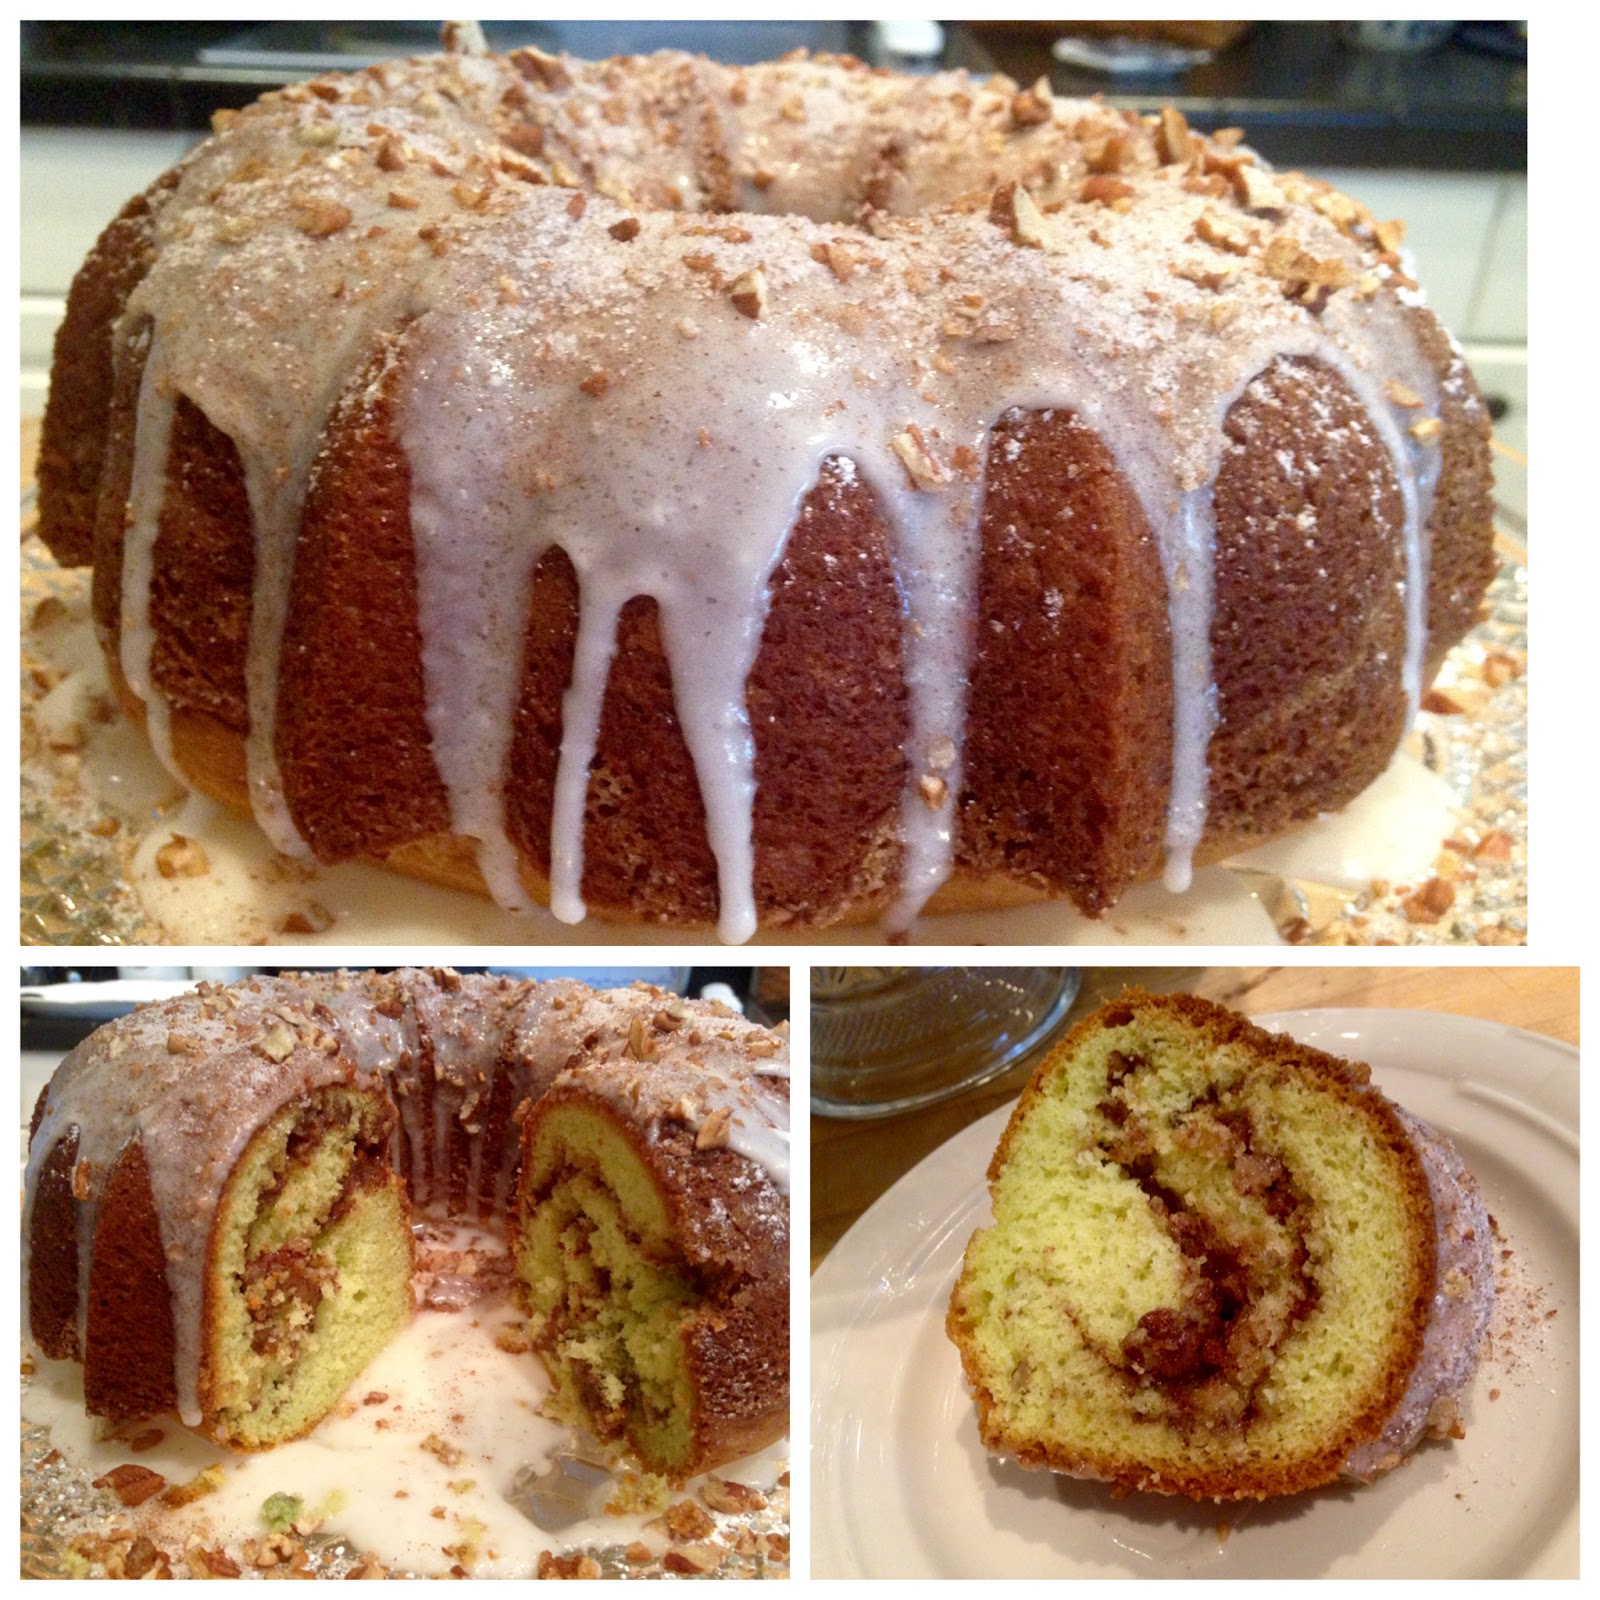 Rita's Recipes: Pistachio Cinnamon Swirl Bundt Cake